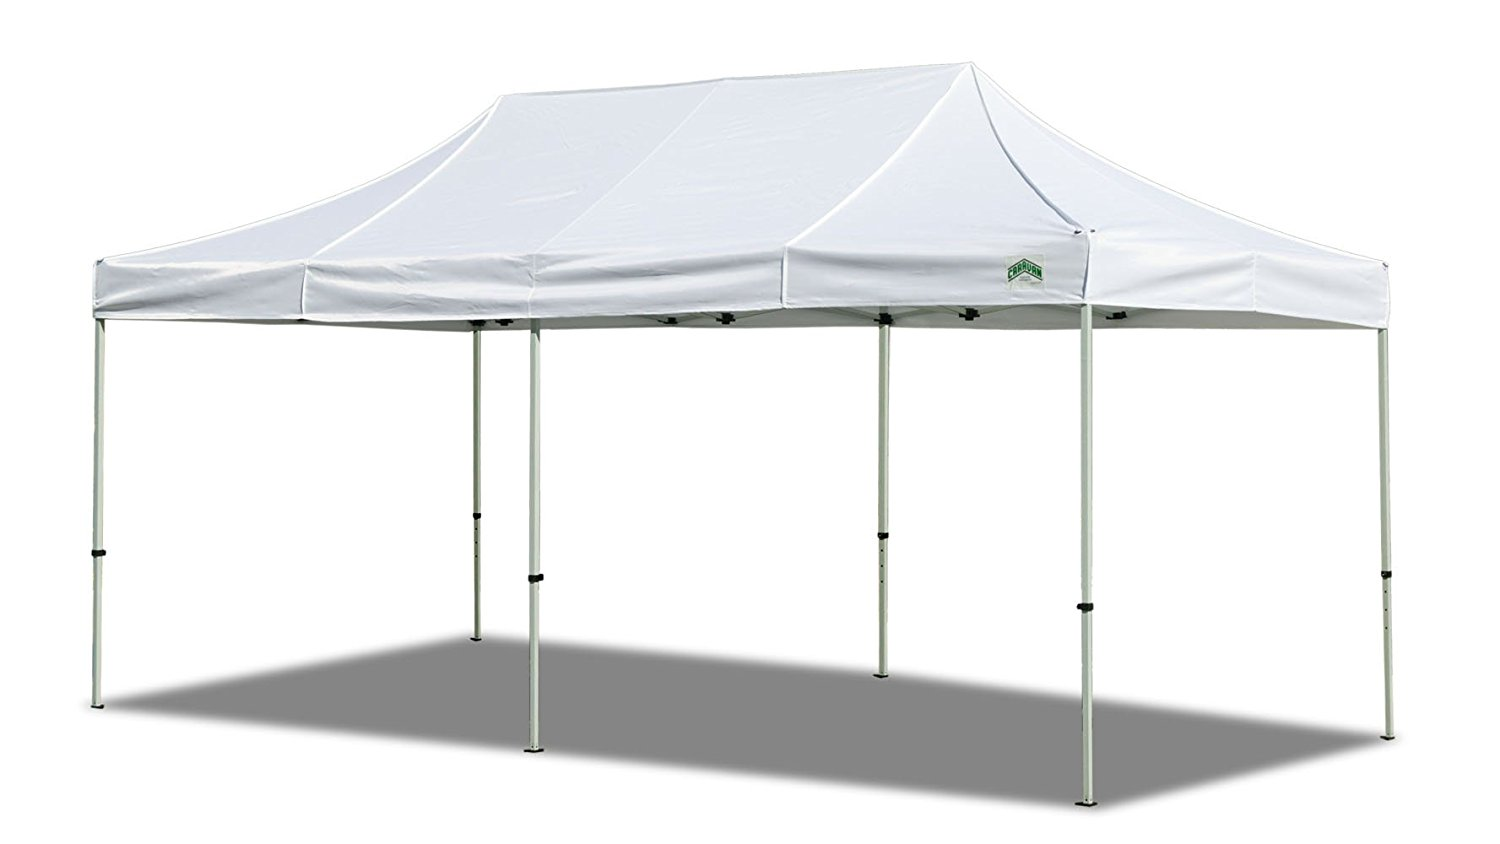 10x20 Freestanding Canopy